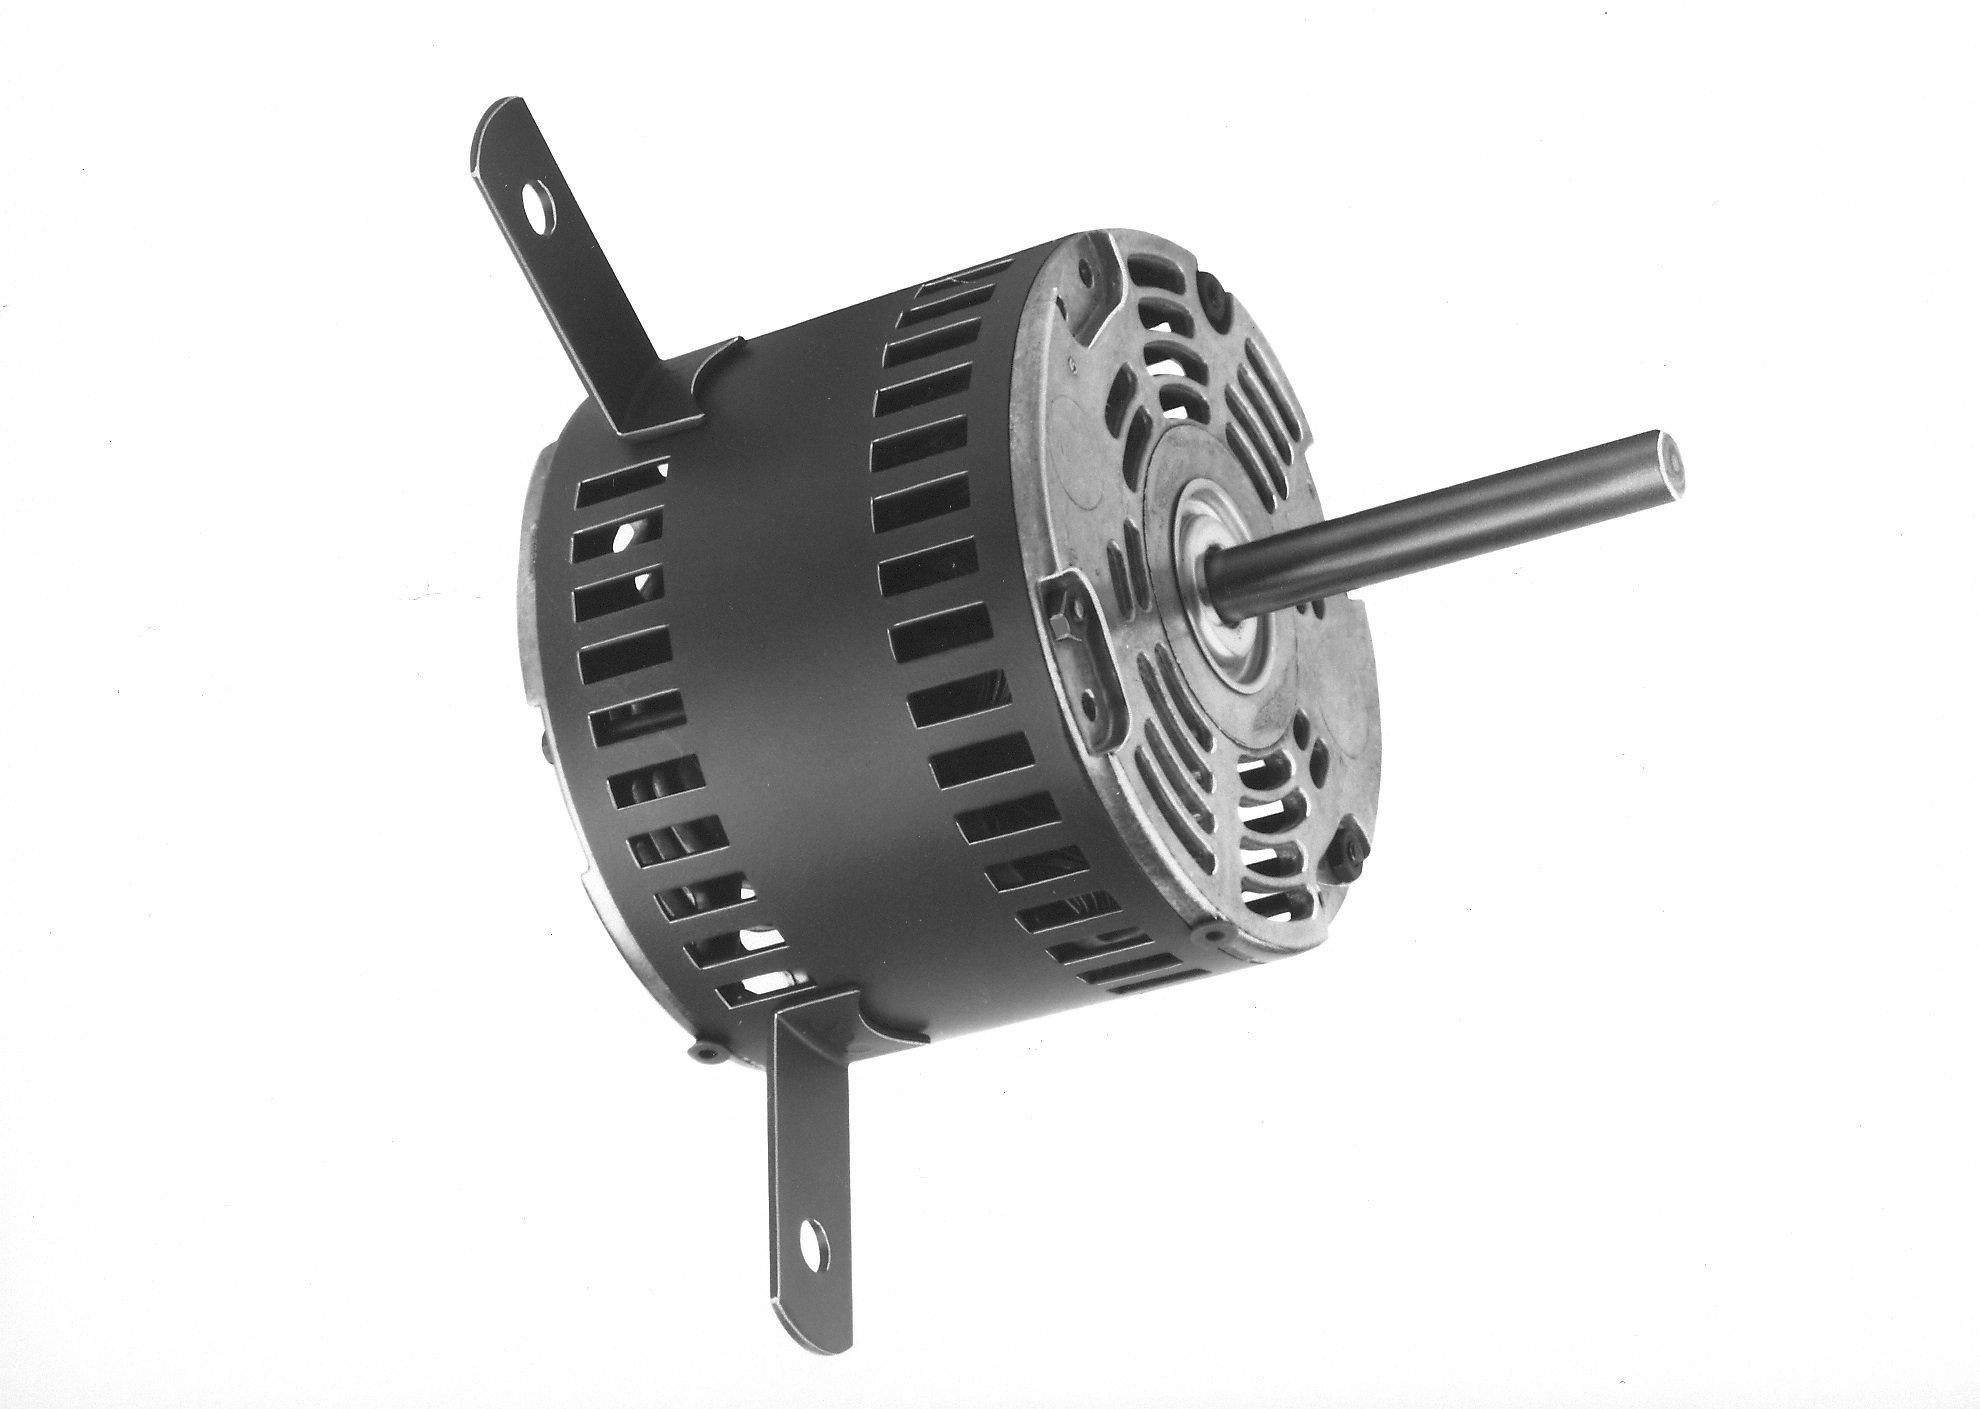 Fasco D1082 5'' Frame Shaded Pole Miller Open Ventilated OEM Replacement Motor with Ball Bearing, 1/8HP, 1070rpm, 115V, 60 Hz, 6.0amps